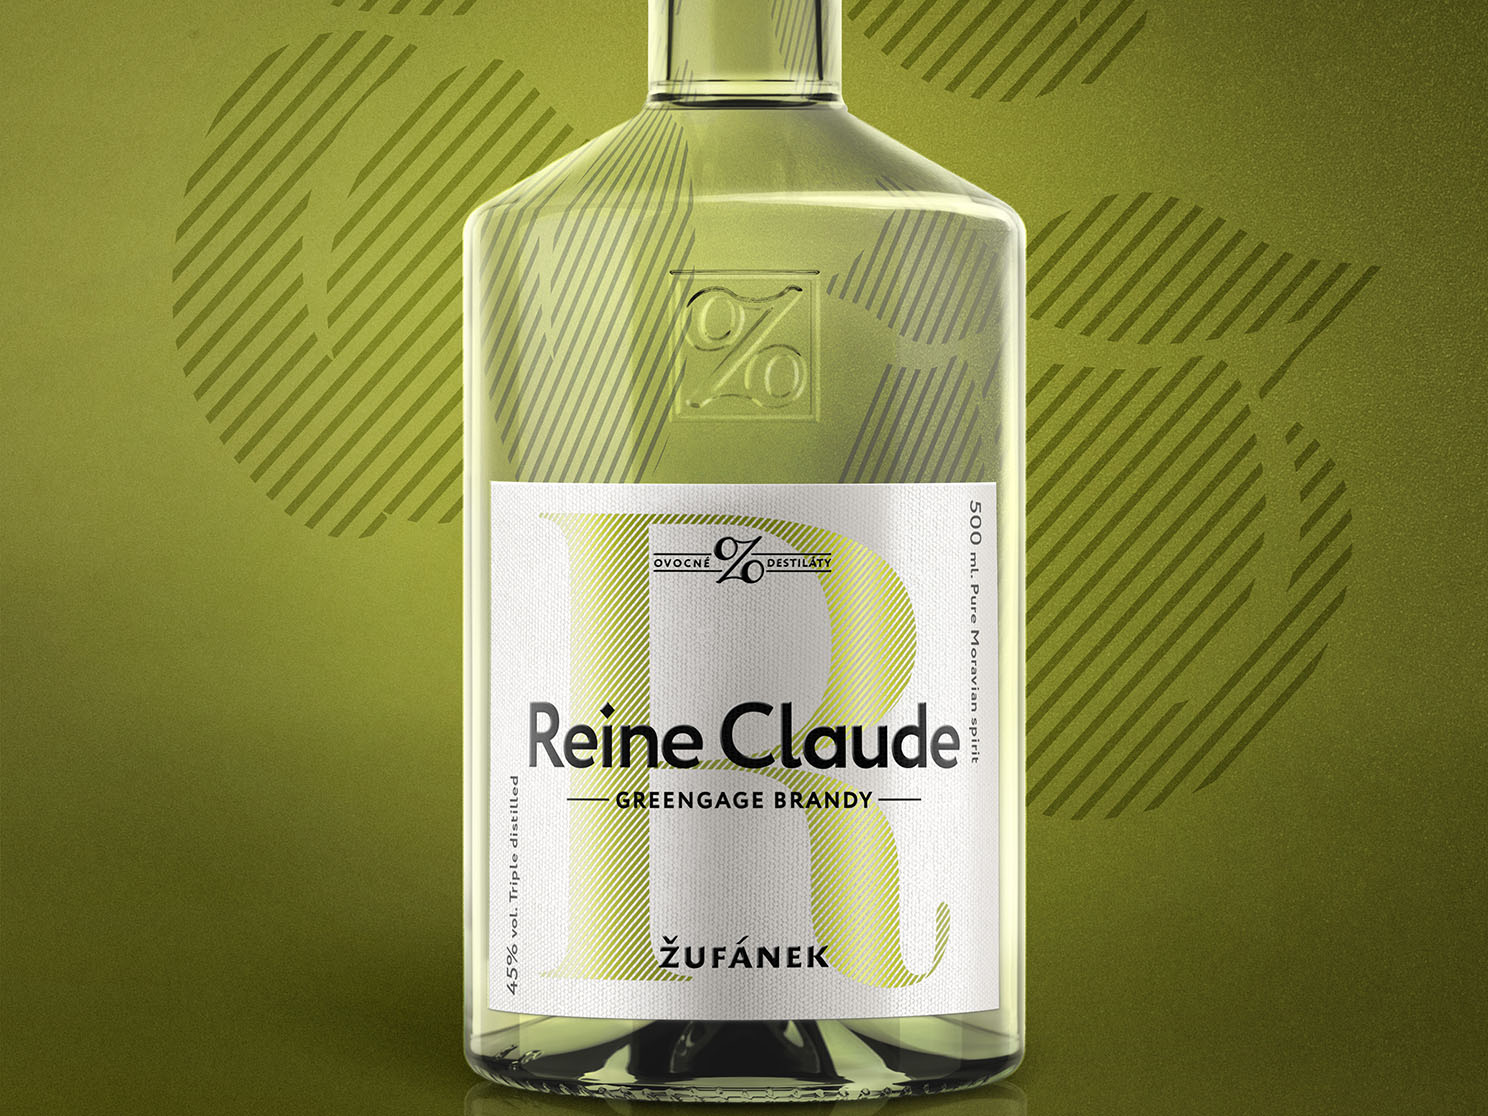 reineclaude visual